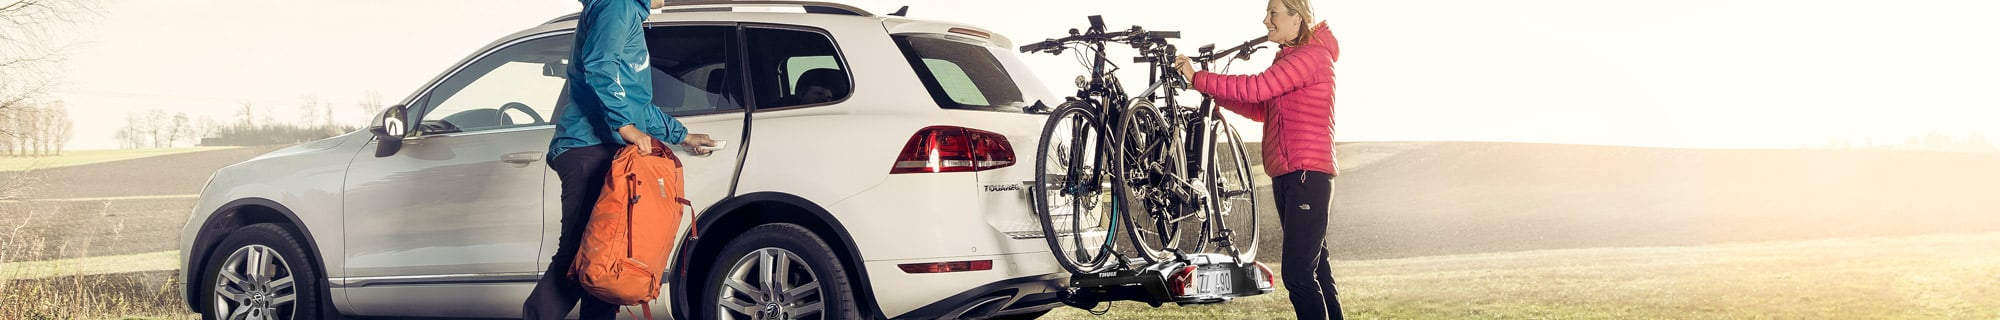 Thule bike racks accessories